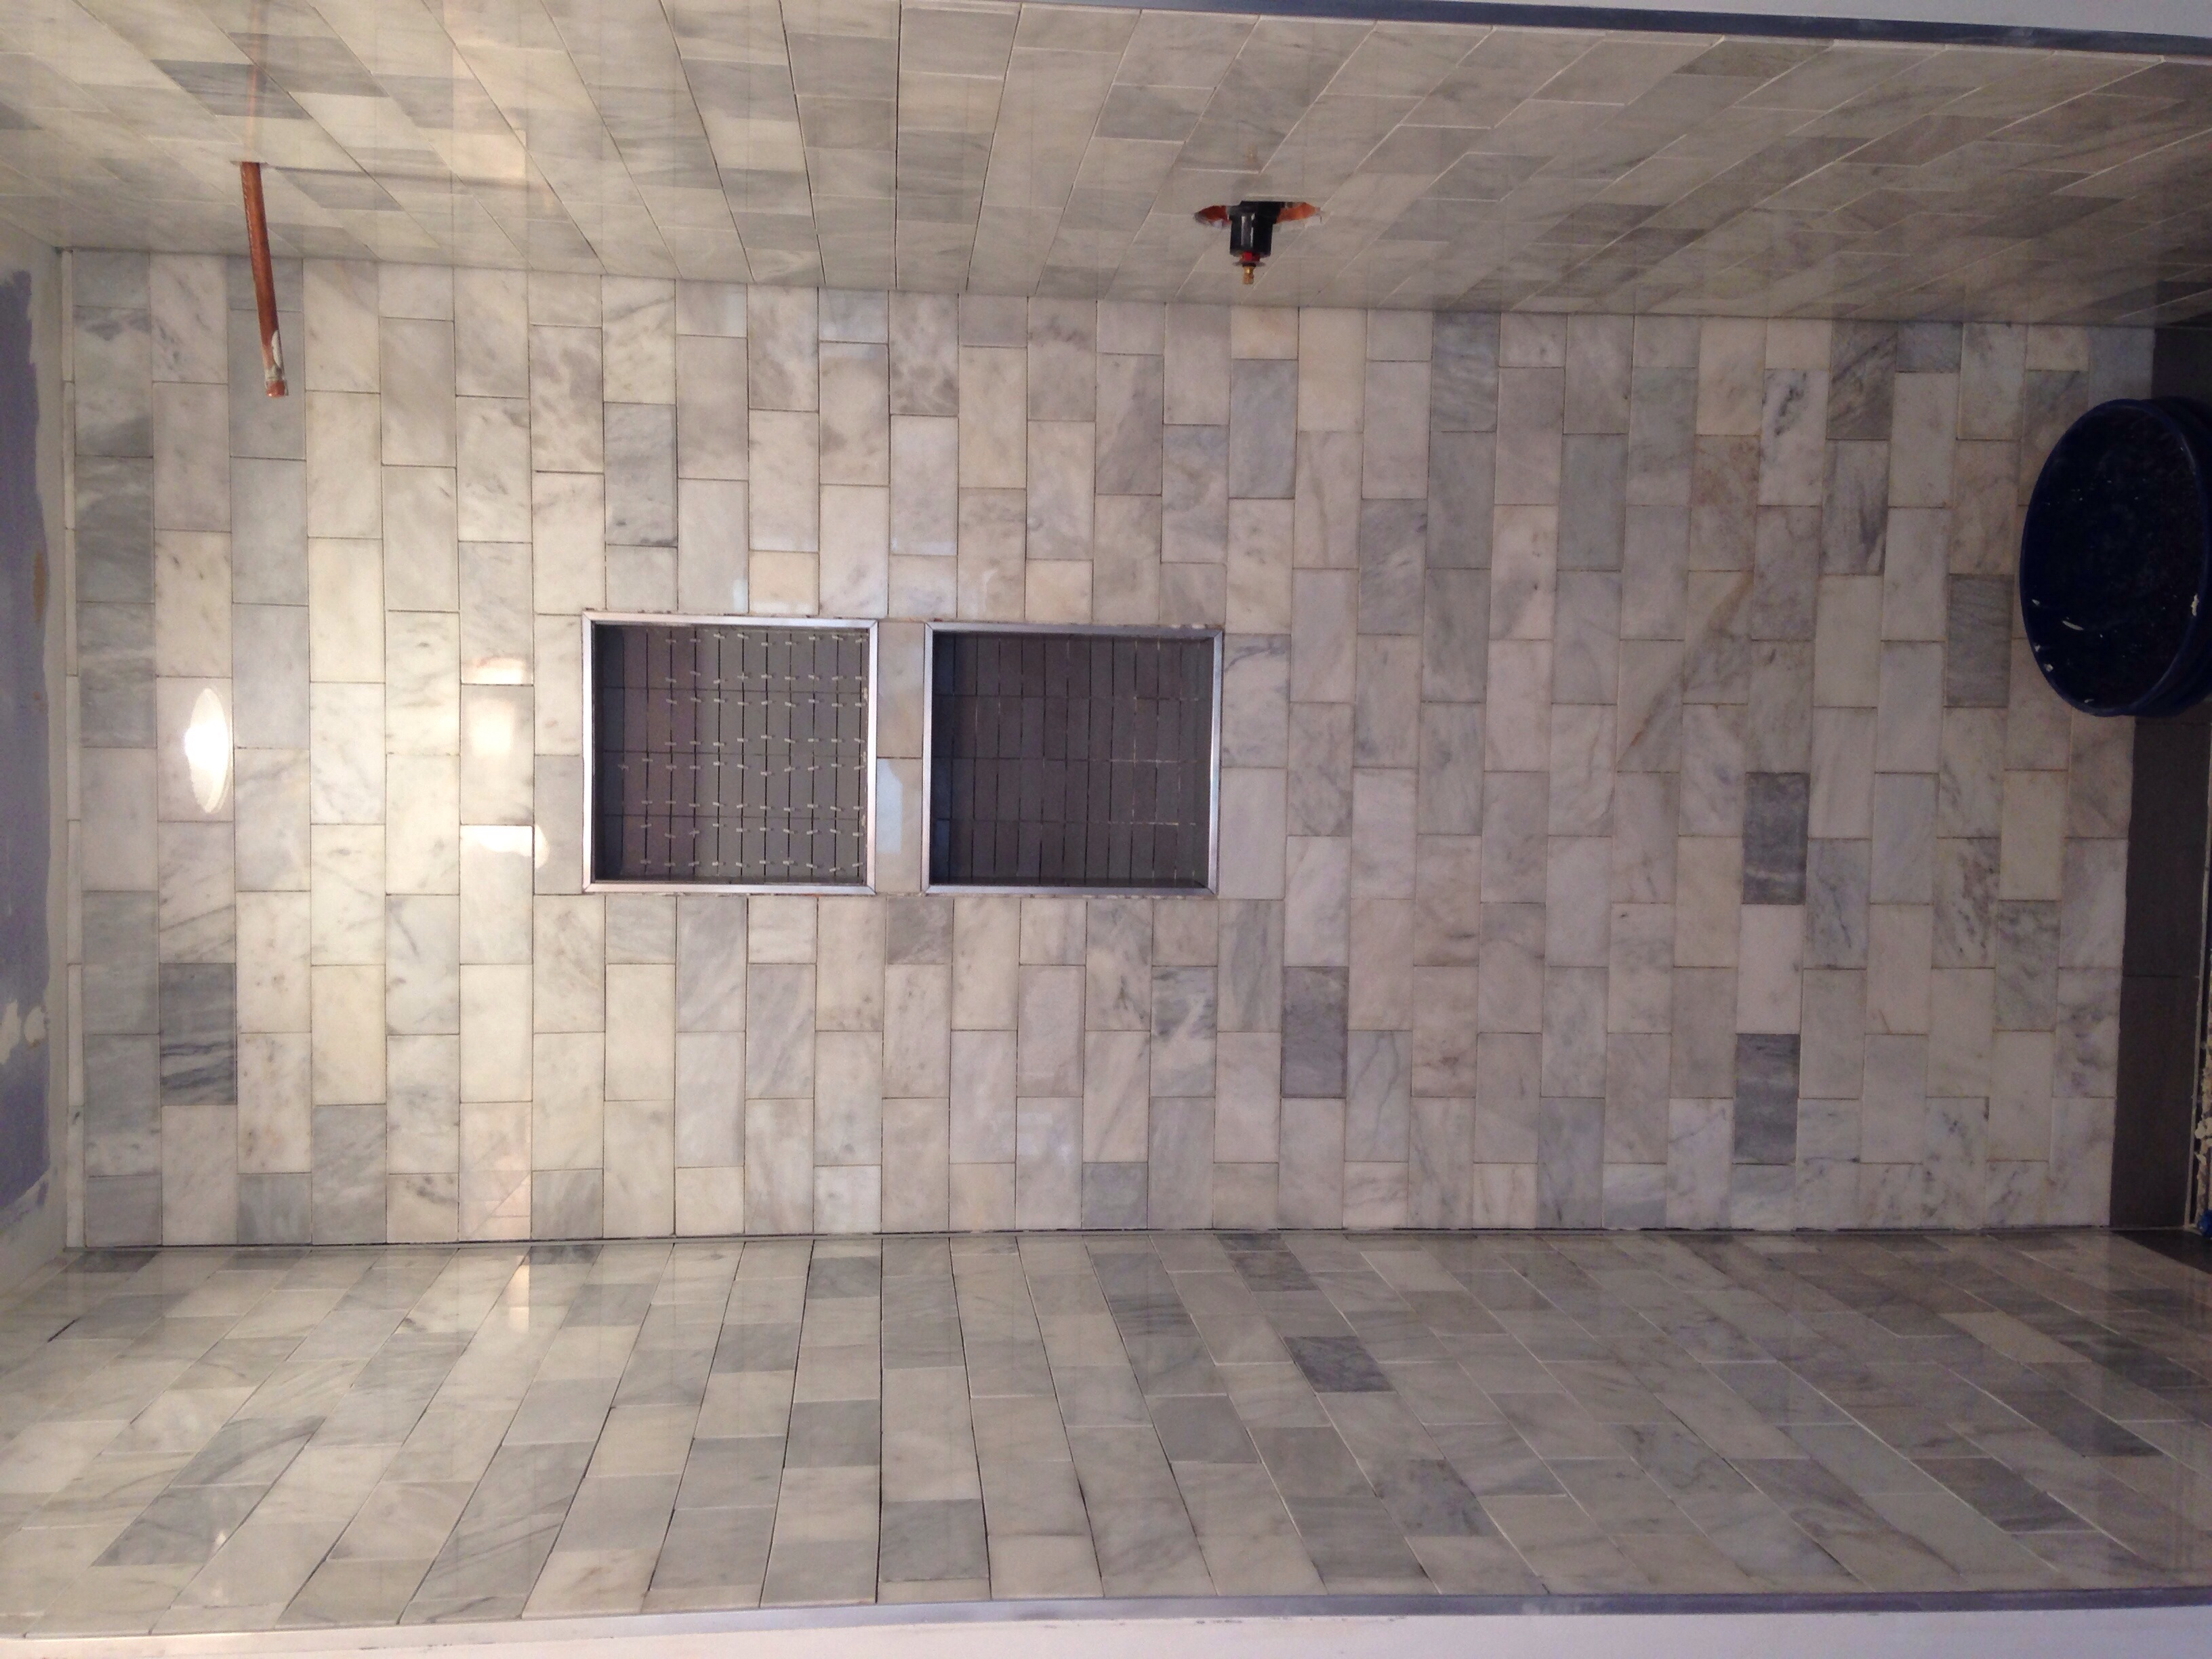 Tiled Walls the shower walls are tiled helen housand 8985 by xevi.us